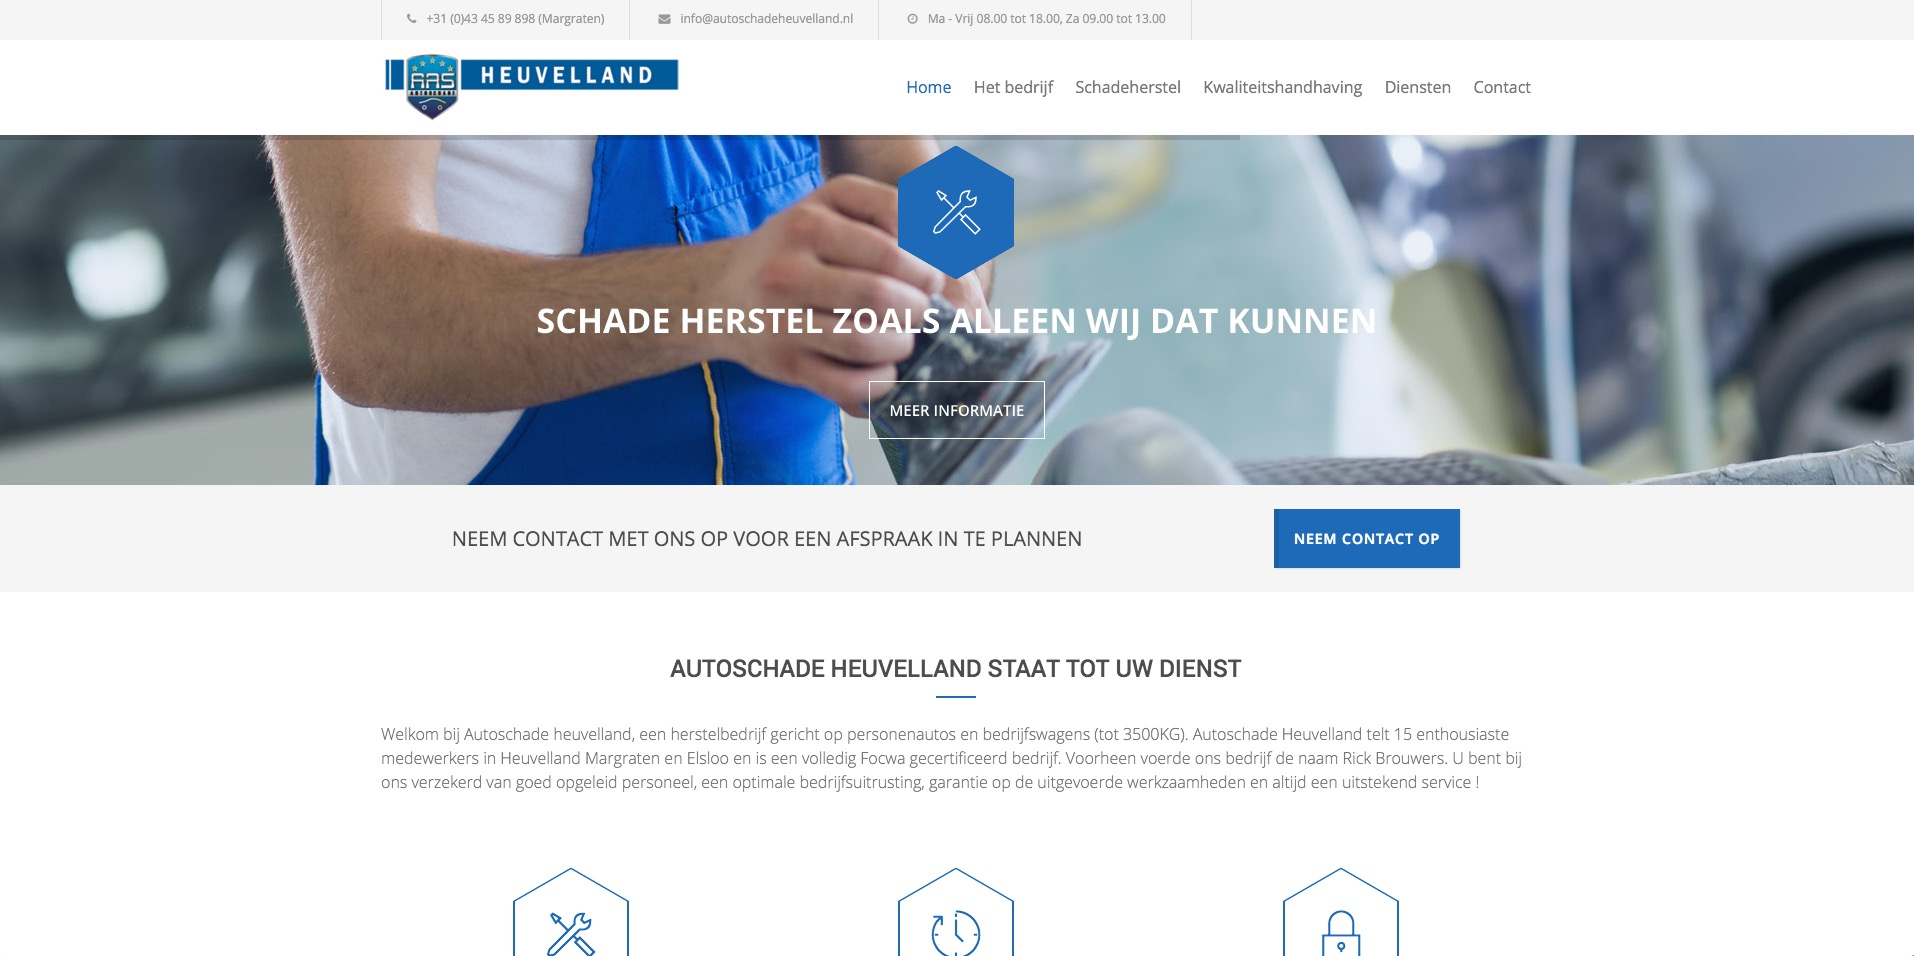 Autoschadeheuvelland2015 New